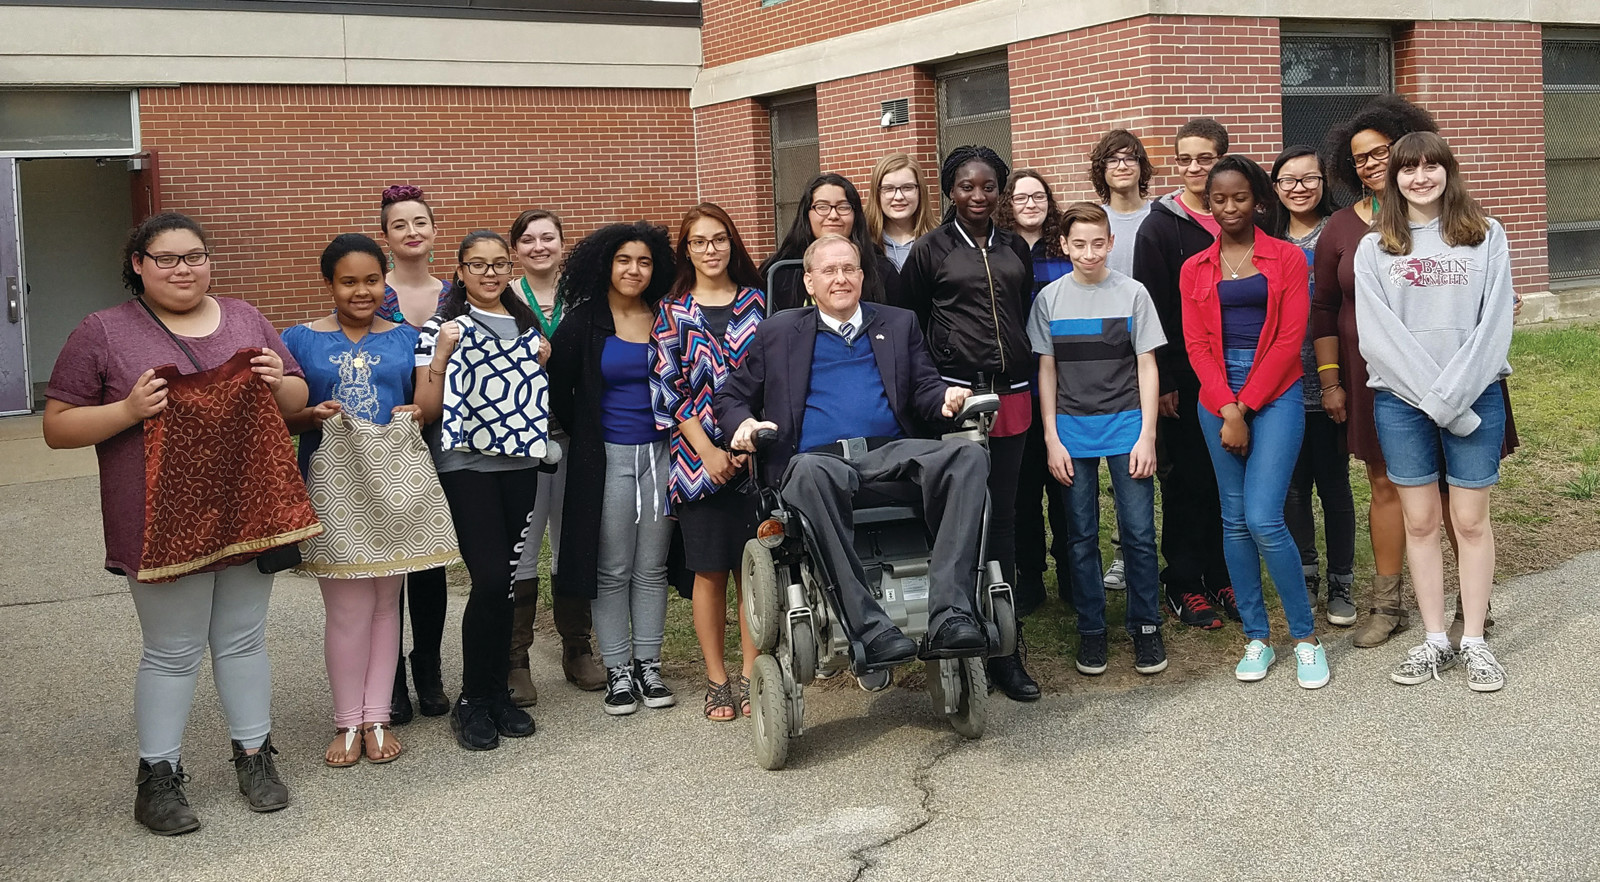 WELCOME TO BAIN : The Youth Empowerment Zone's student leadership team at the Bain extended day program greeted Congressman Jim Langevin when he visited them at Hugh B. Bain Middle School last week.